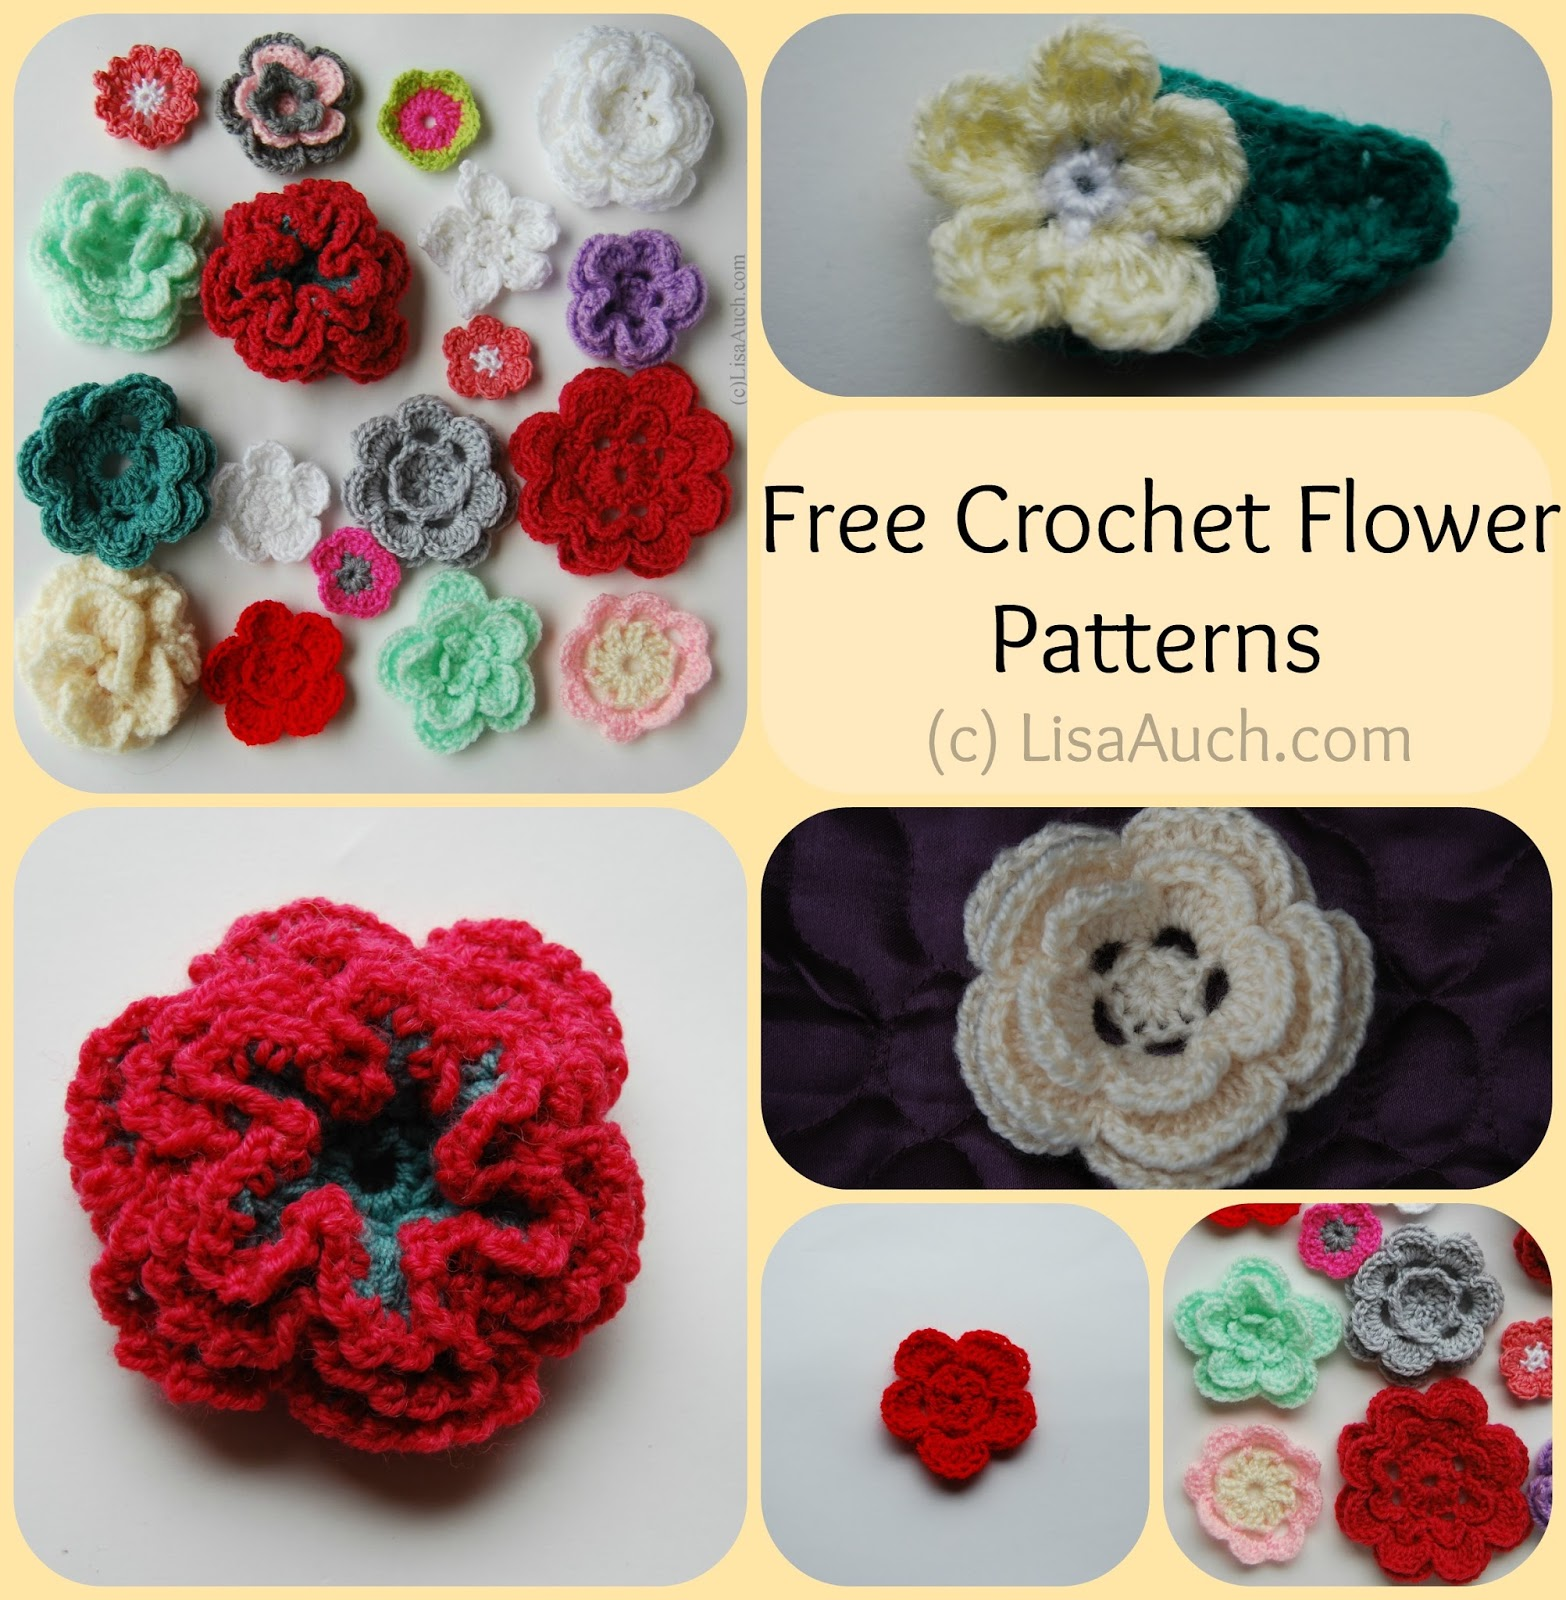 Free Crochet Flower Pattern How to crochet a rose | Free Crochet ...